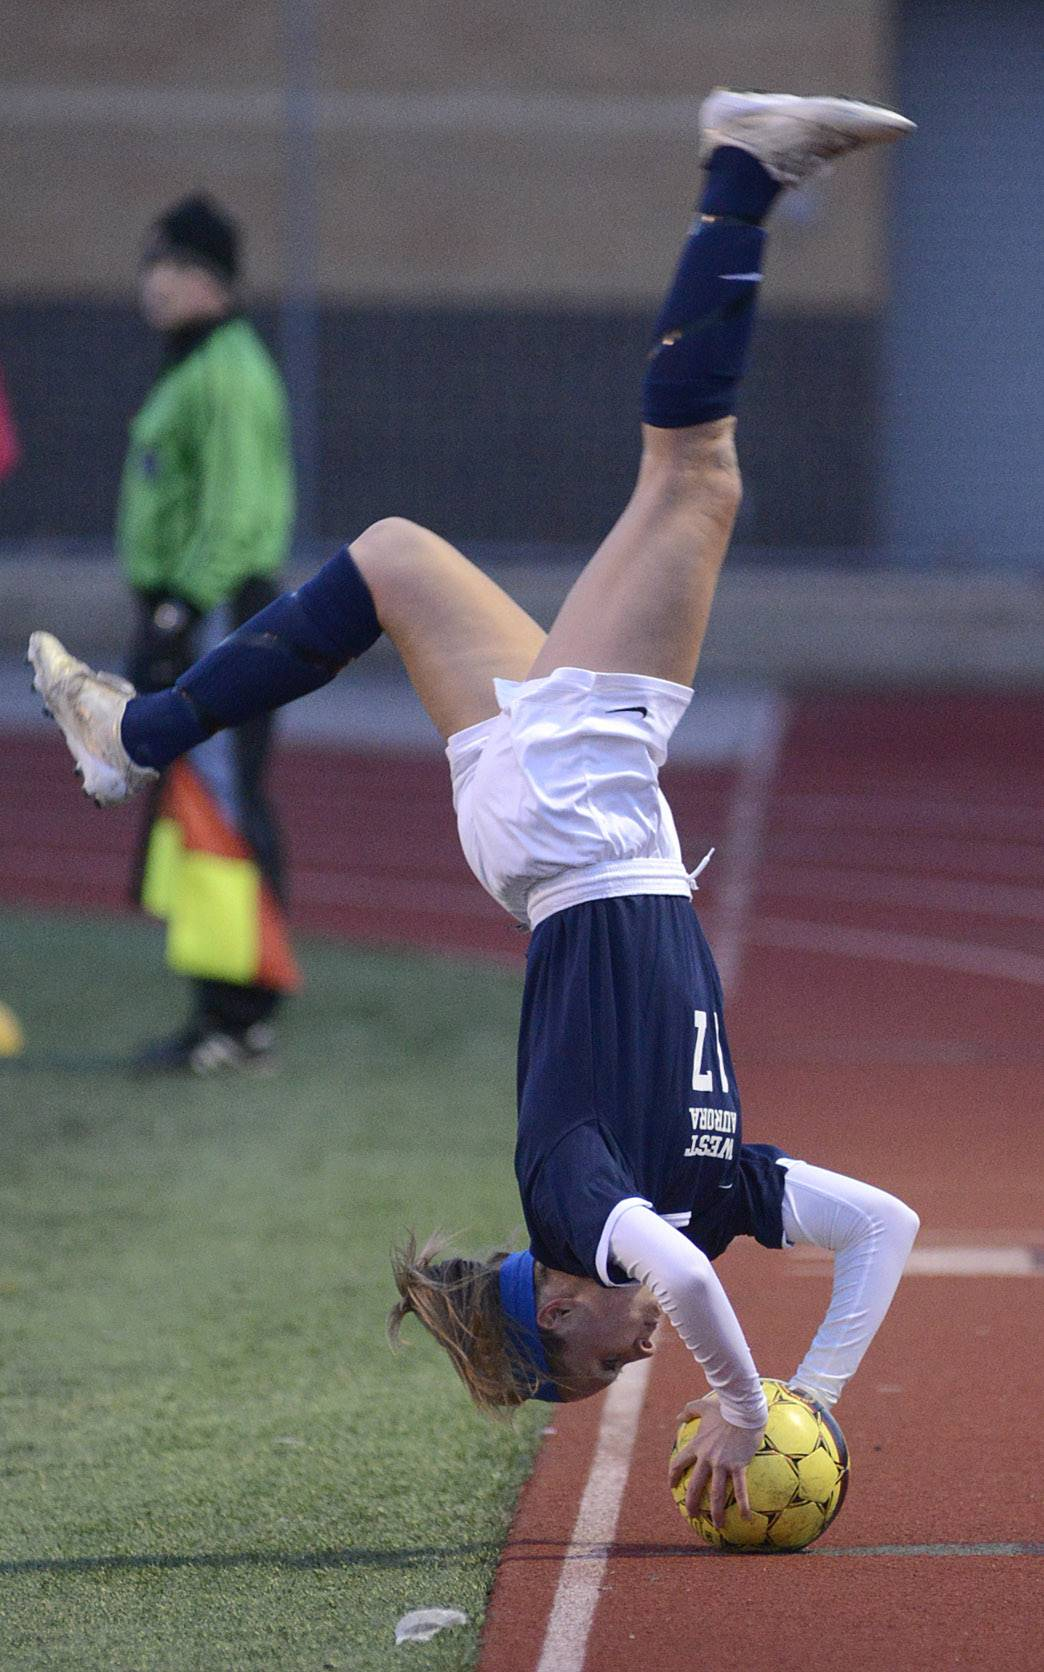 West Aurora's Sam O'Brien throws in the ball via a somersault during Wednesday's game.